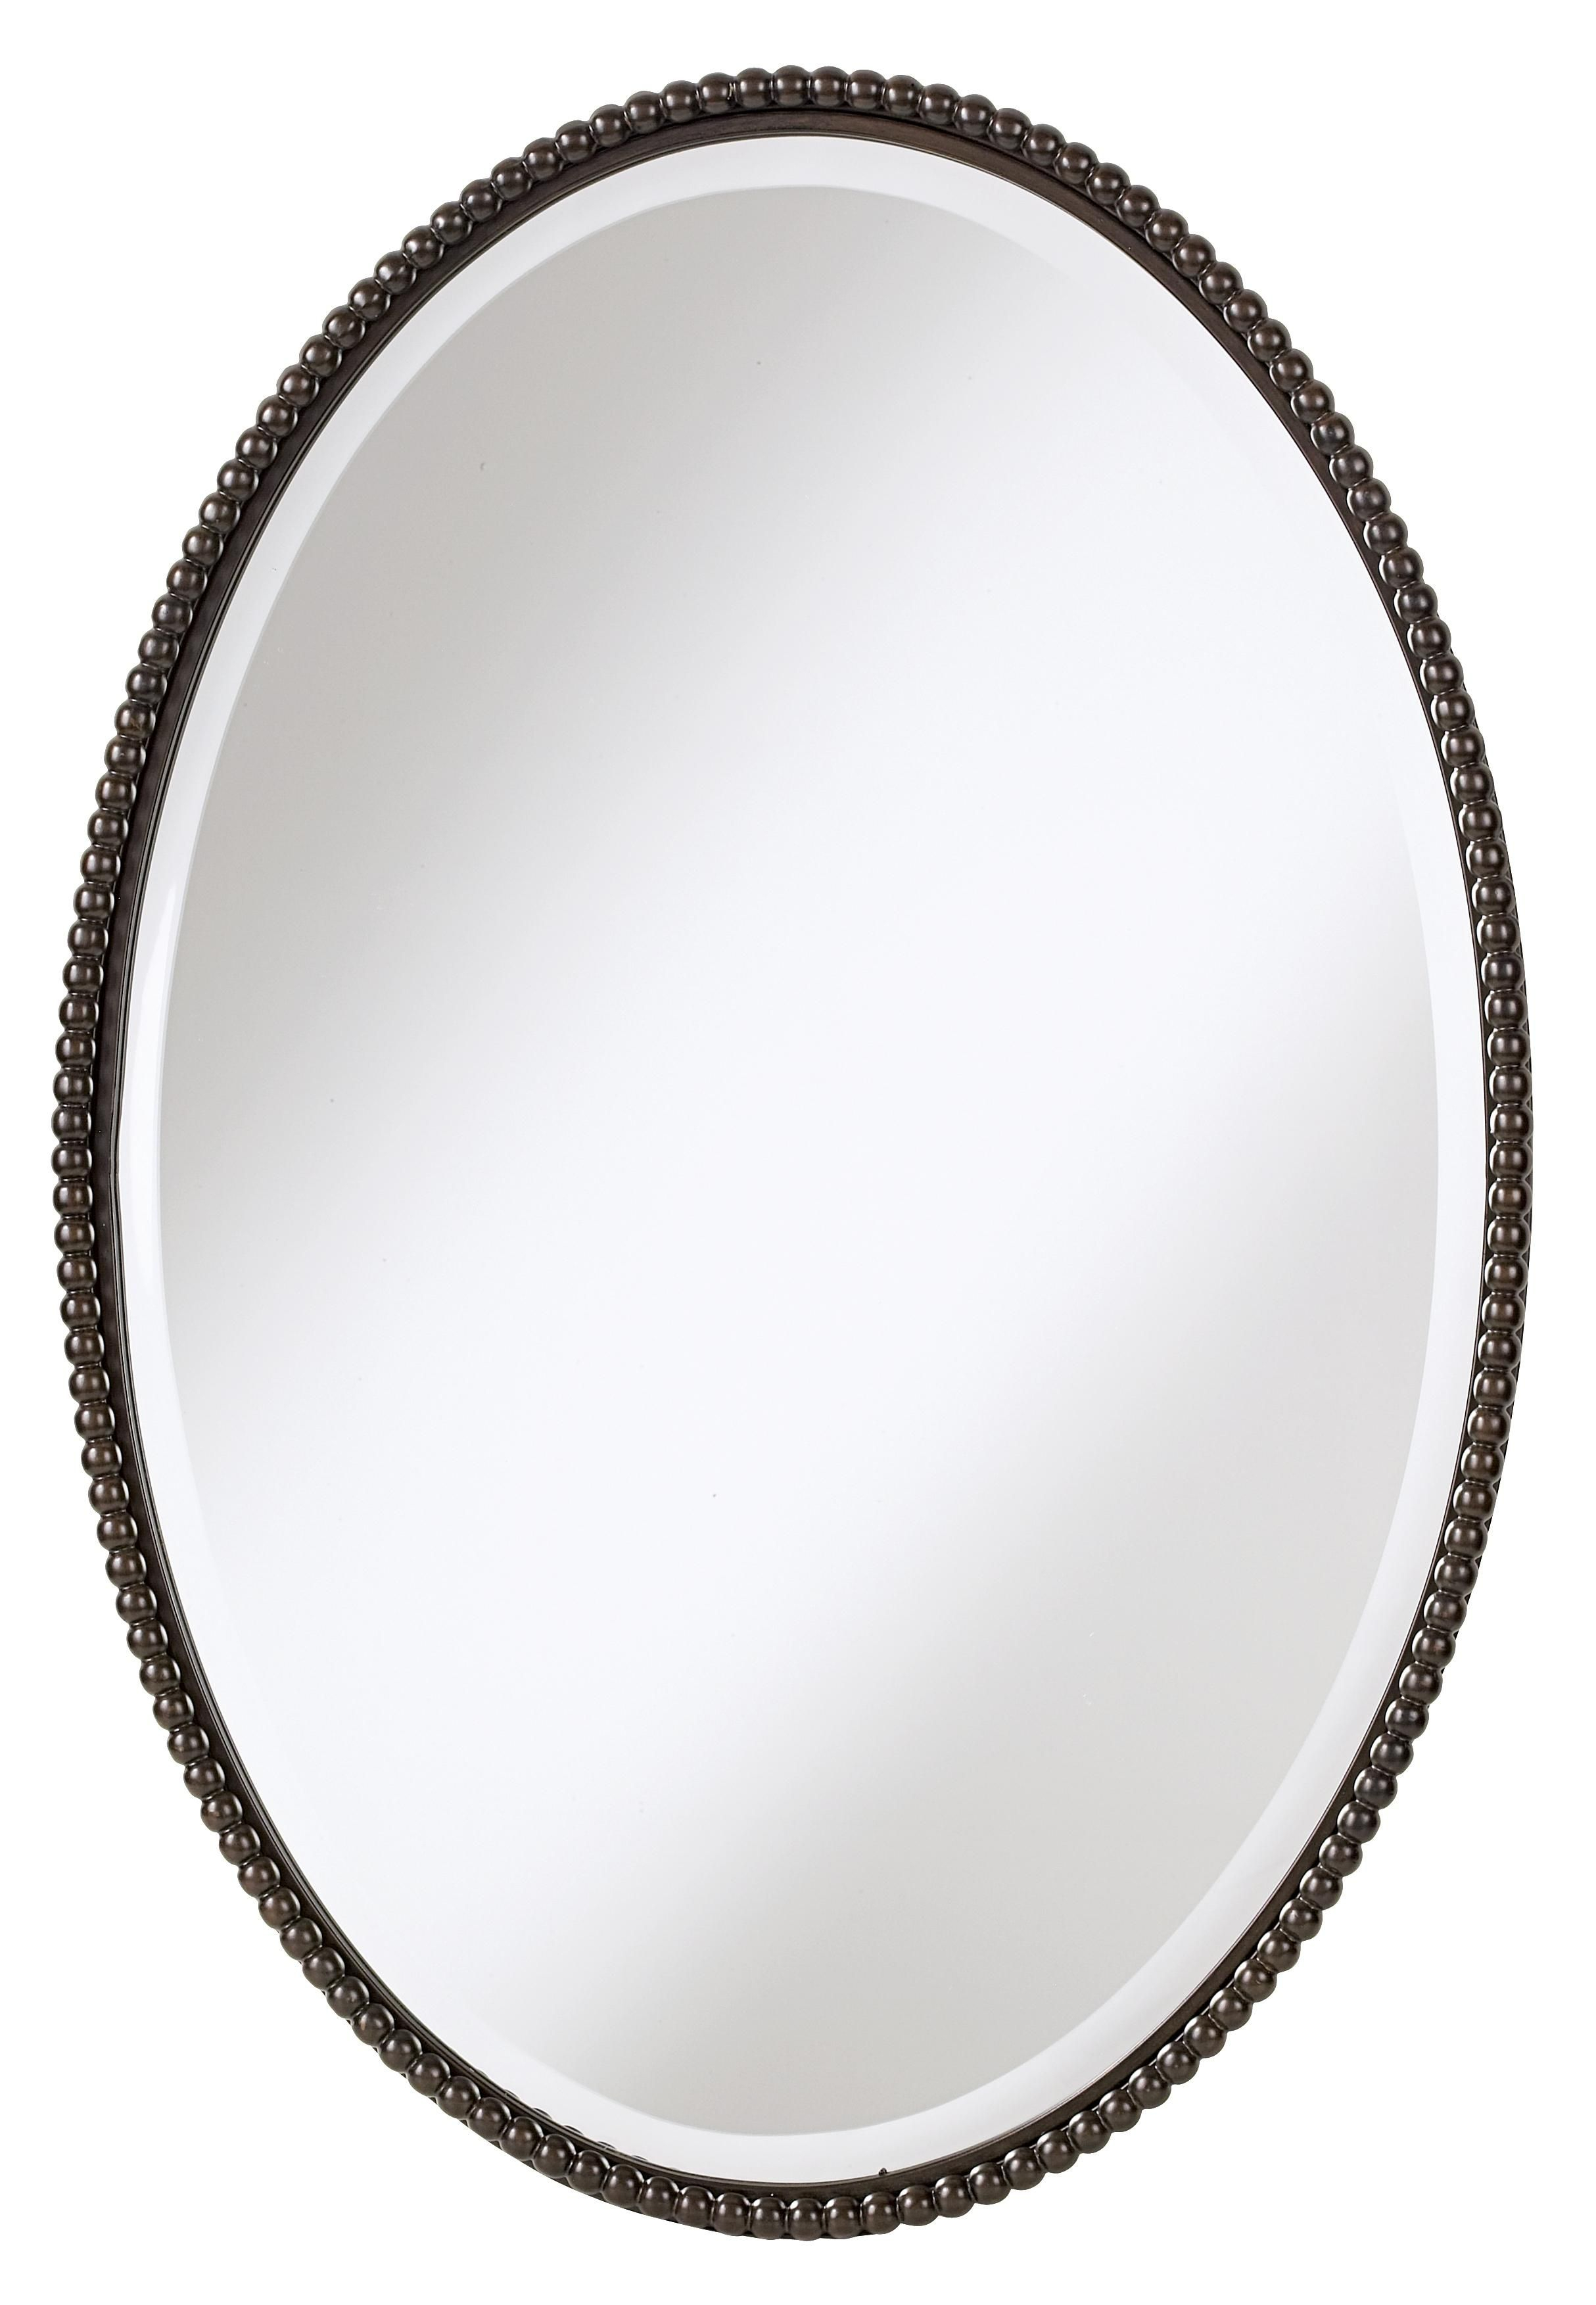 Pinterest Regarding Pfister Oval Wood Wall Mirrors (Image 18 of 20)